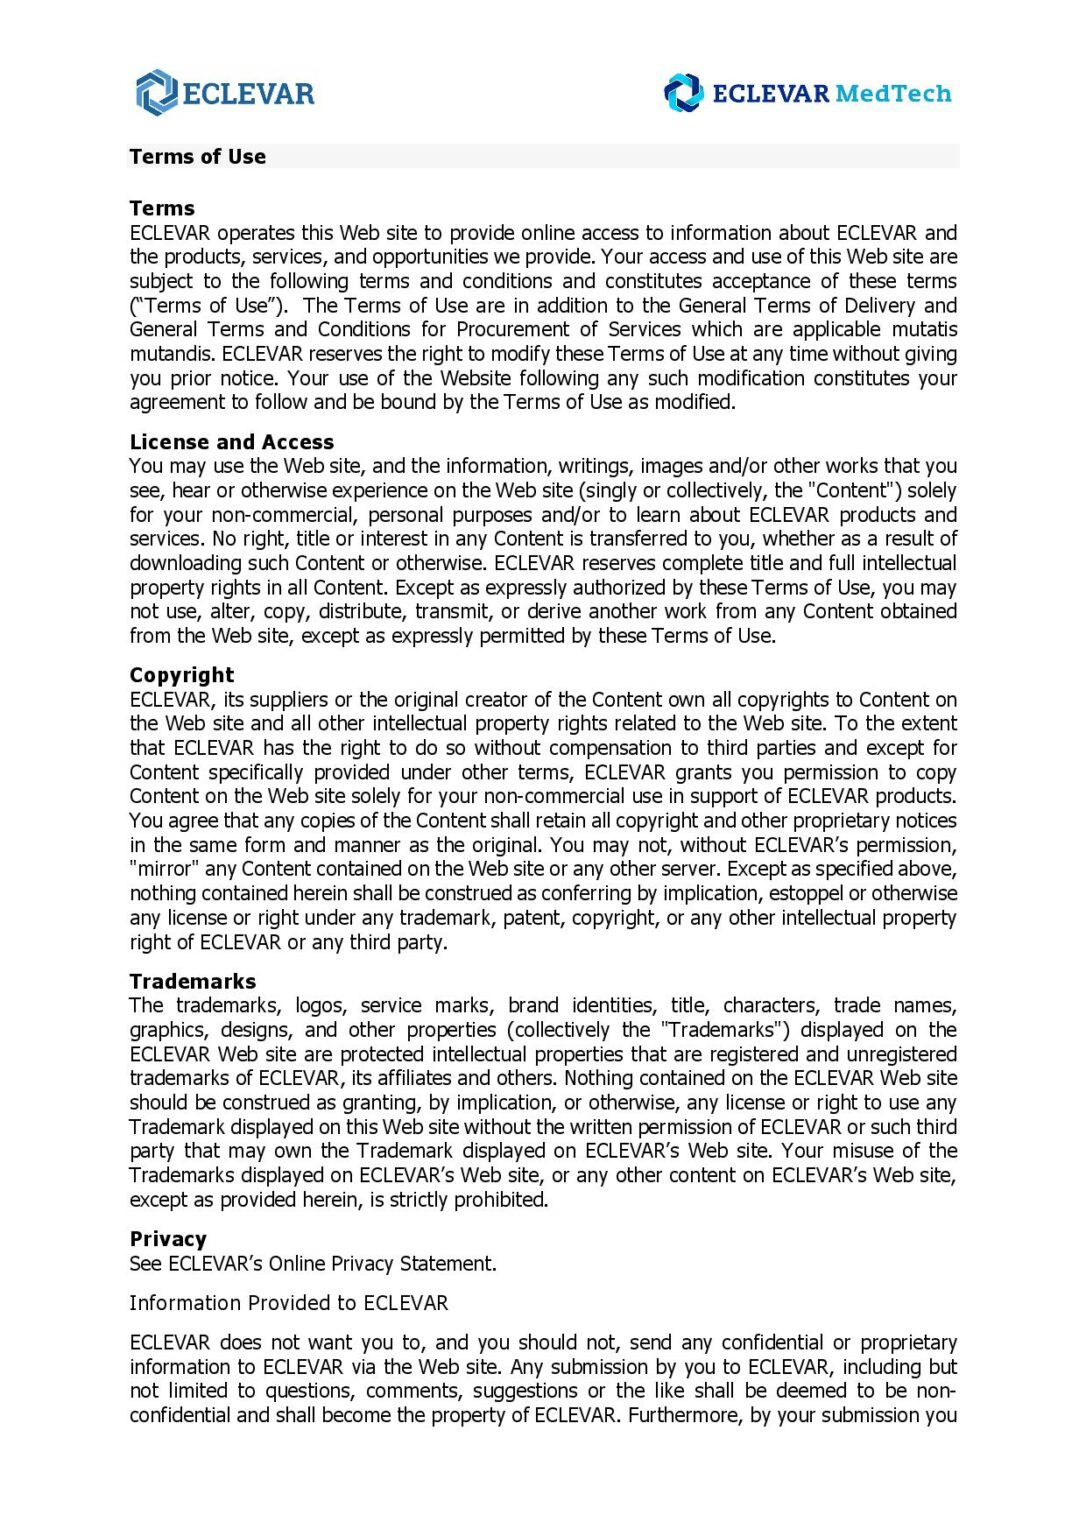 ECLEVAR PRIVACY 19 08 2020 _MedTech-page-007